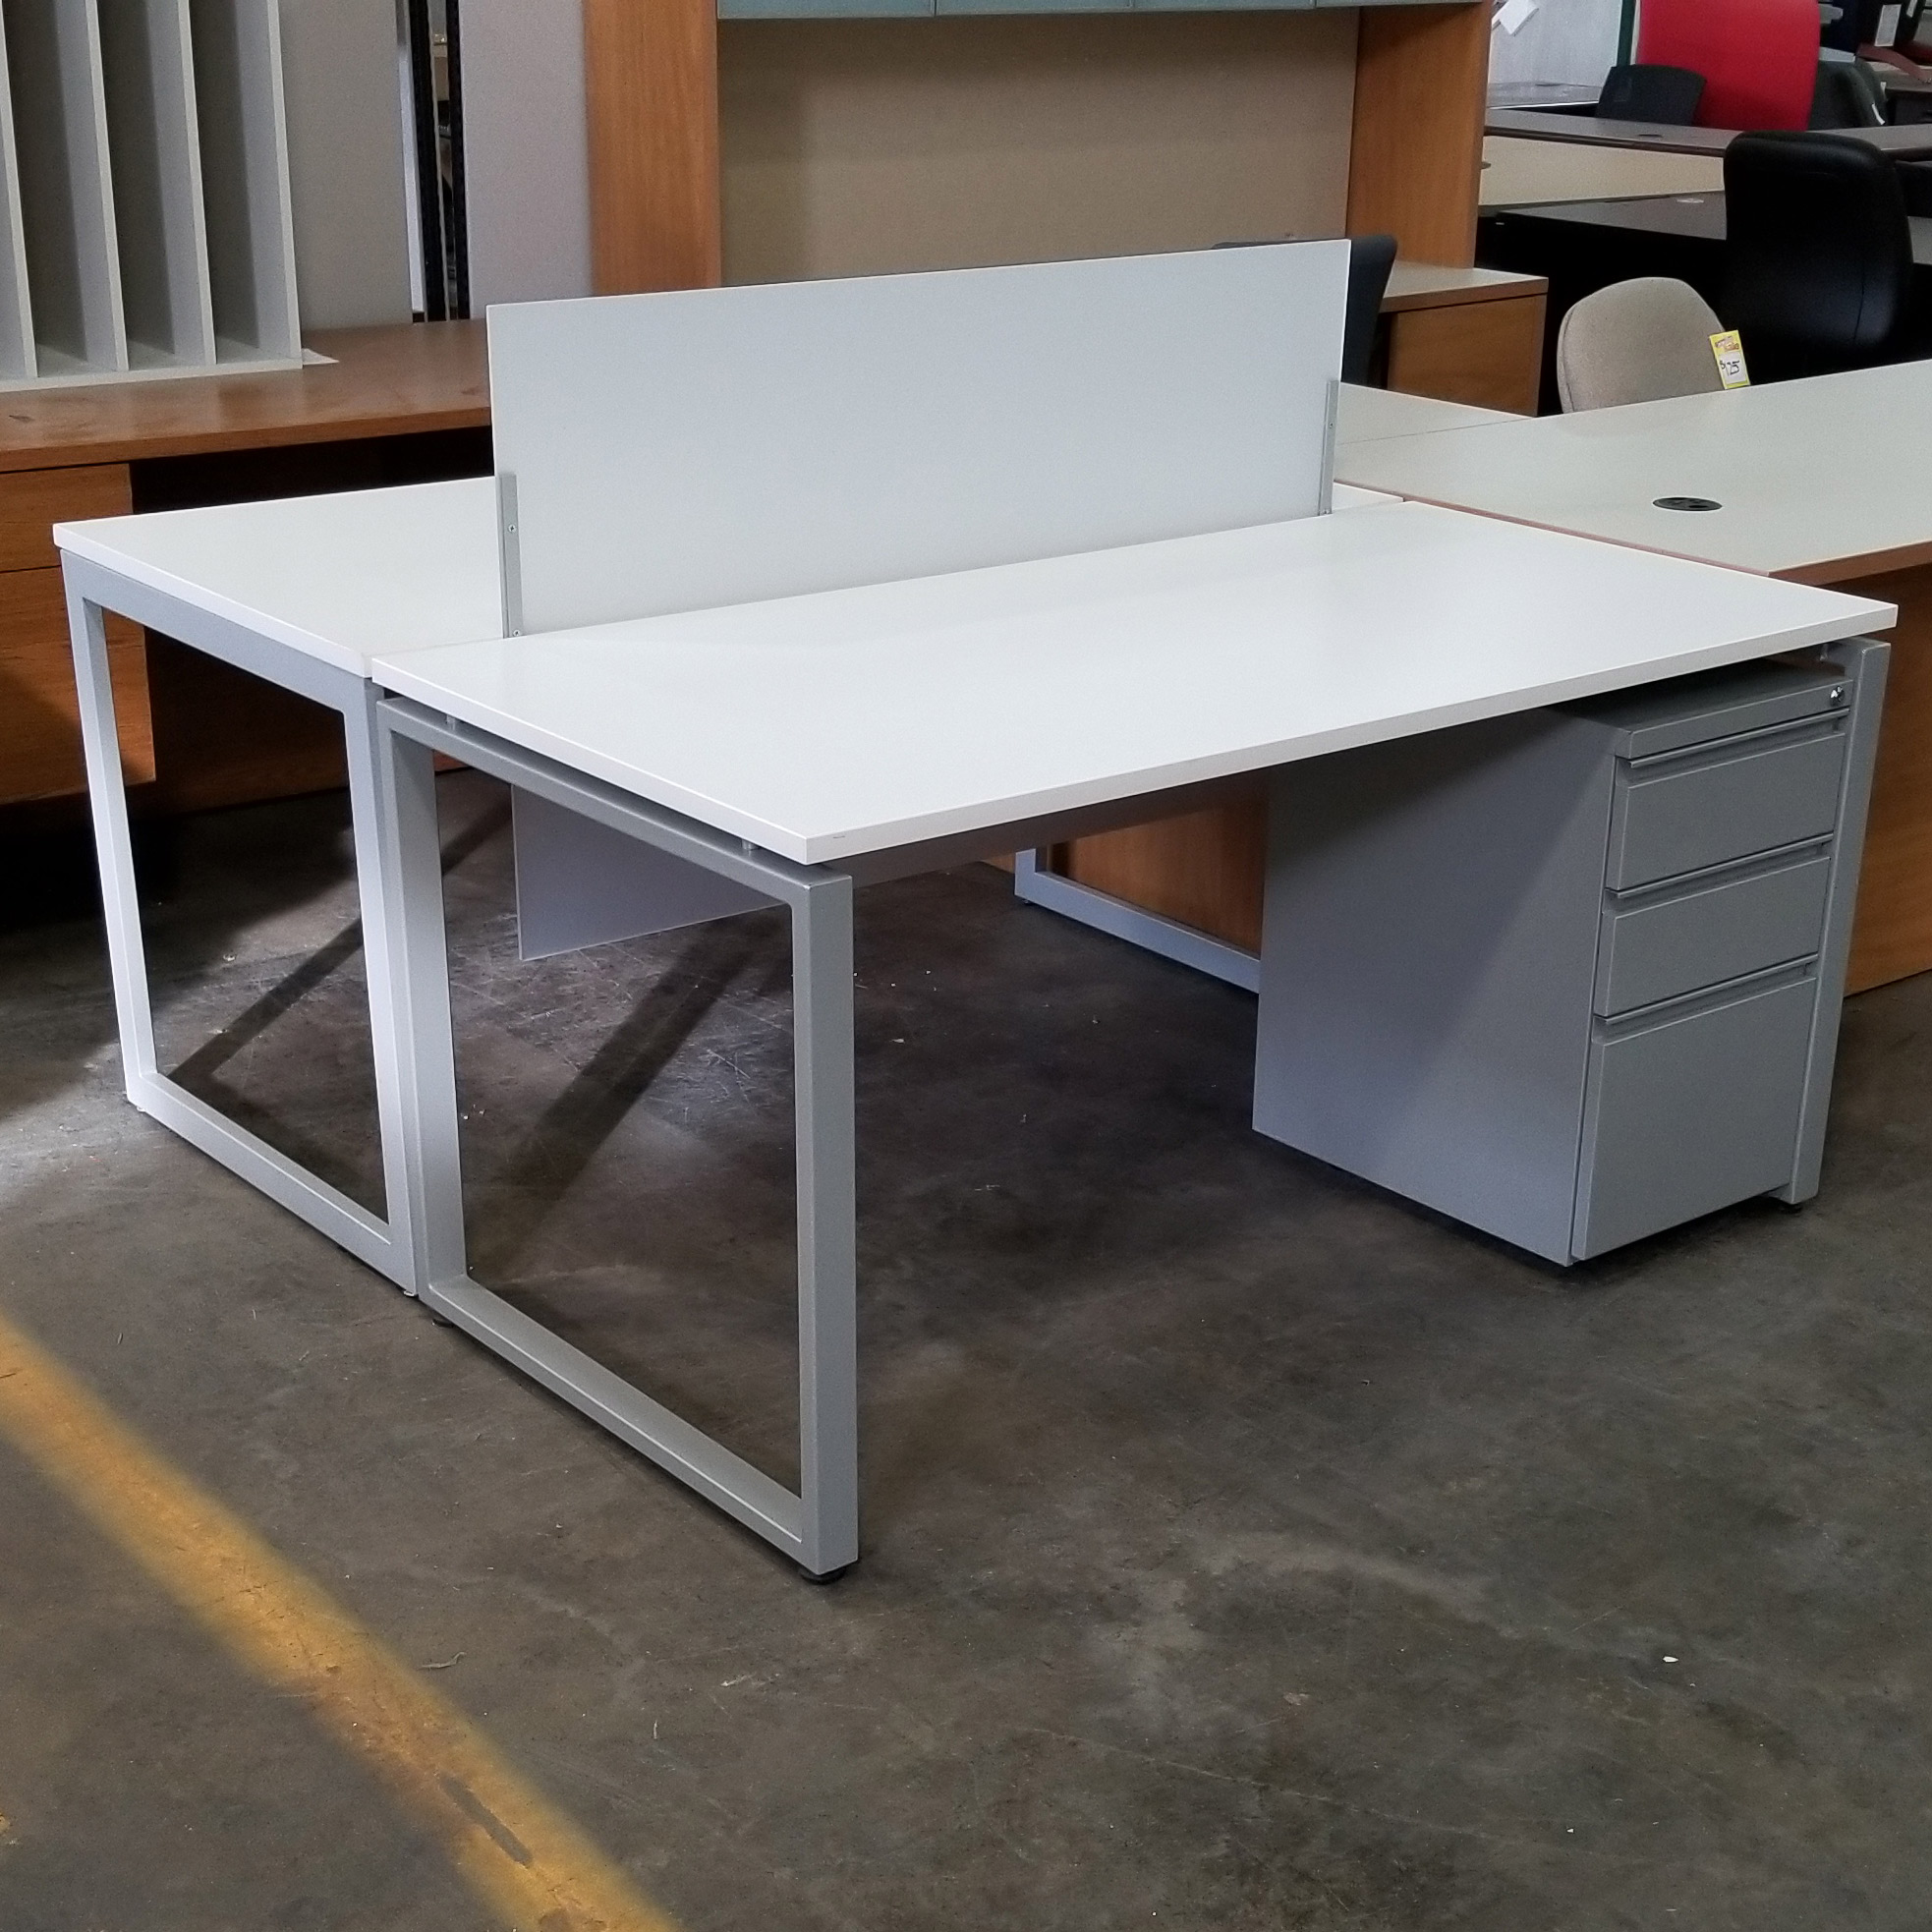 used voi benching desks hon  450 arthur p o hara  inc clearance office furniture near me clearance office furniture macclesfield